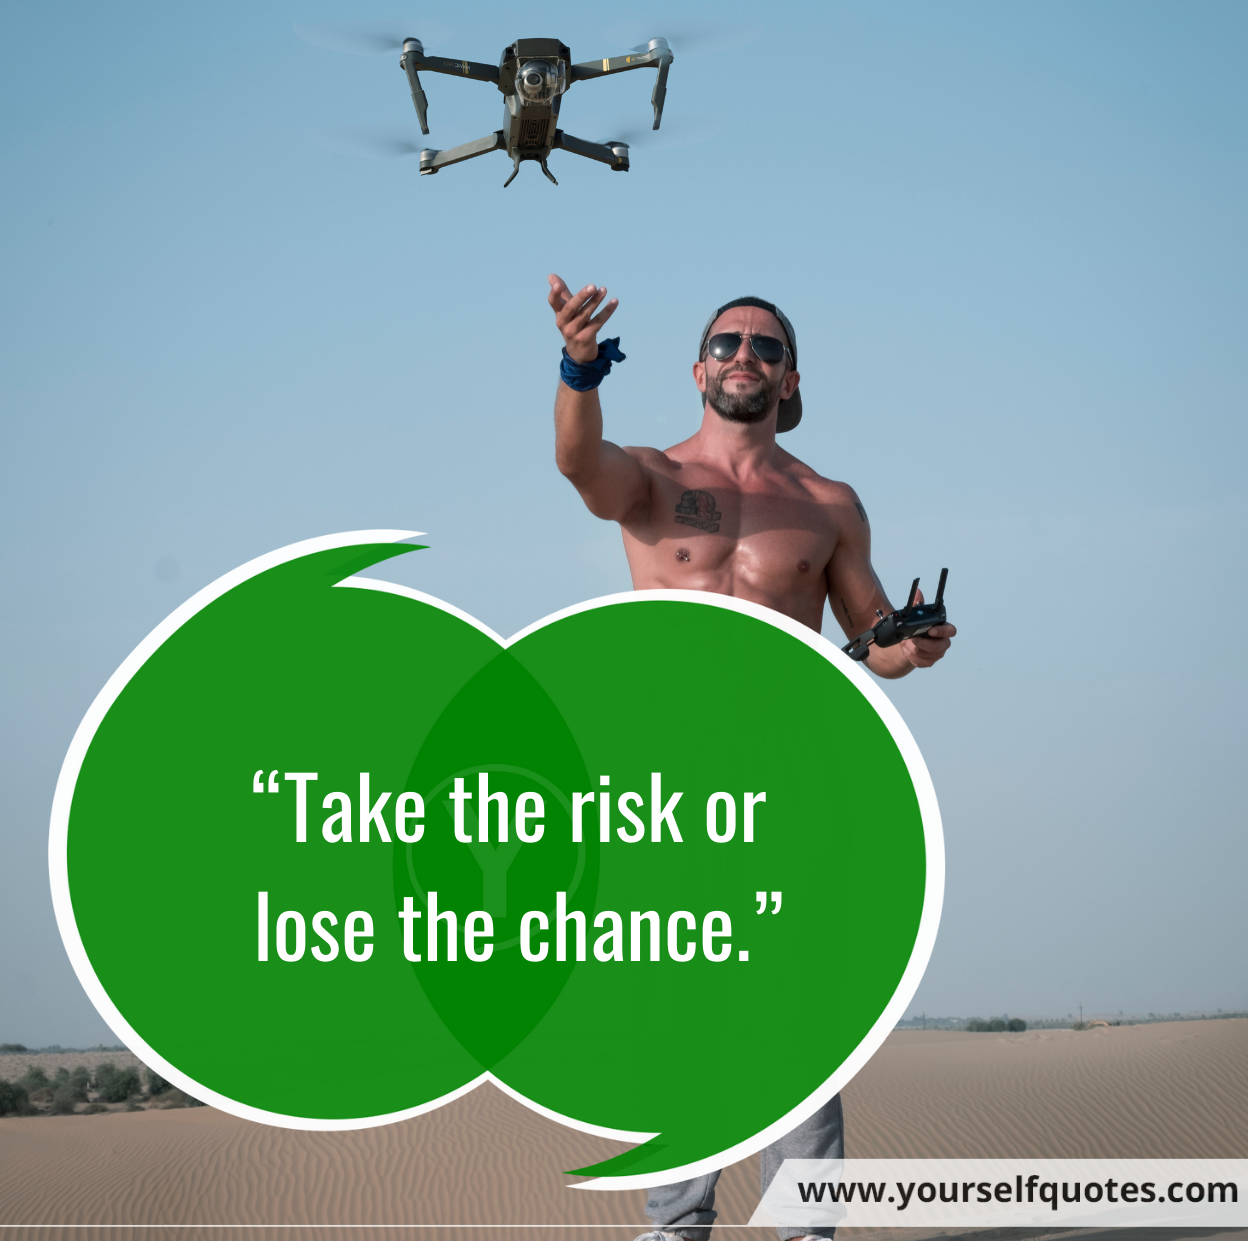 Inspirational Quotes On Risks Images